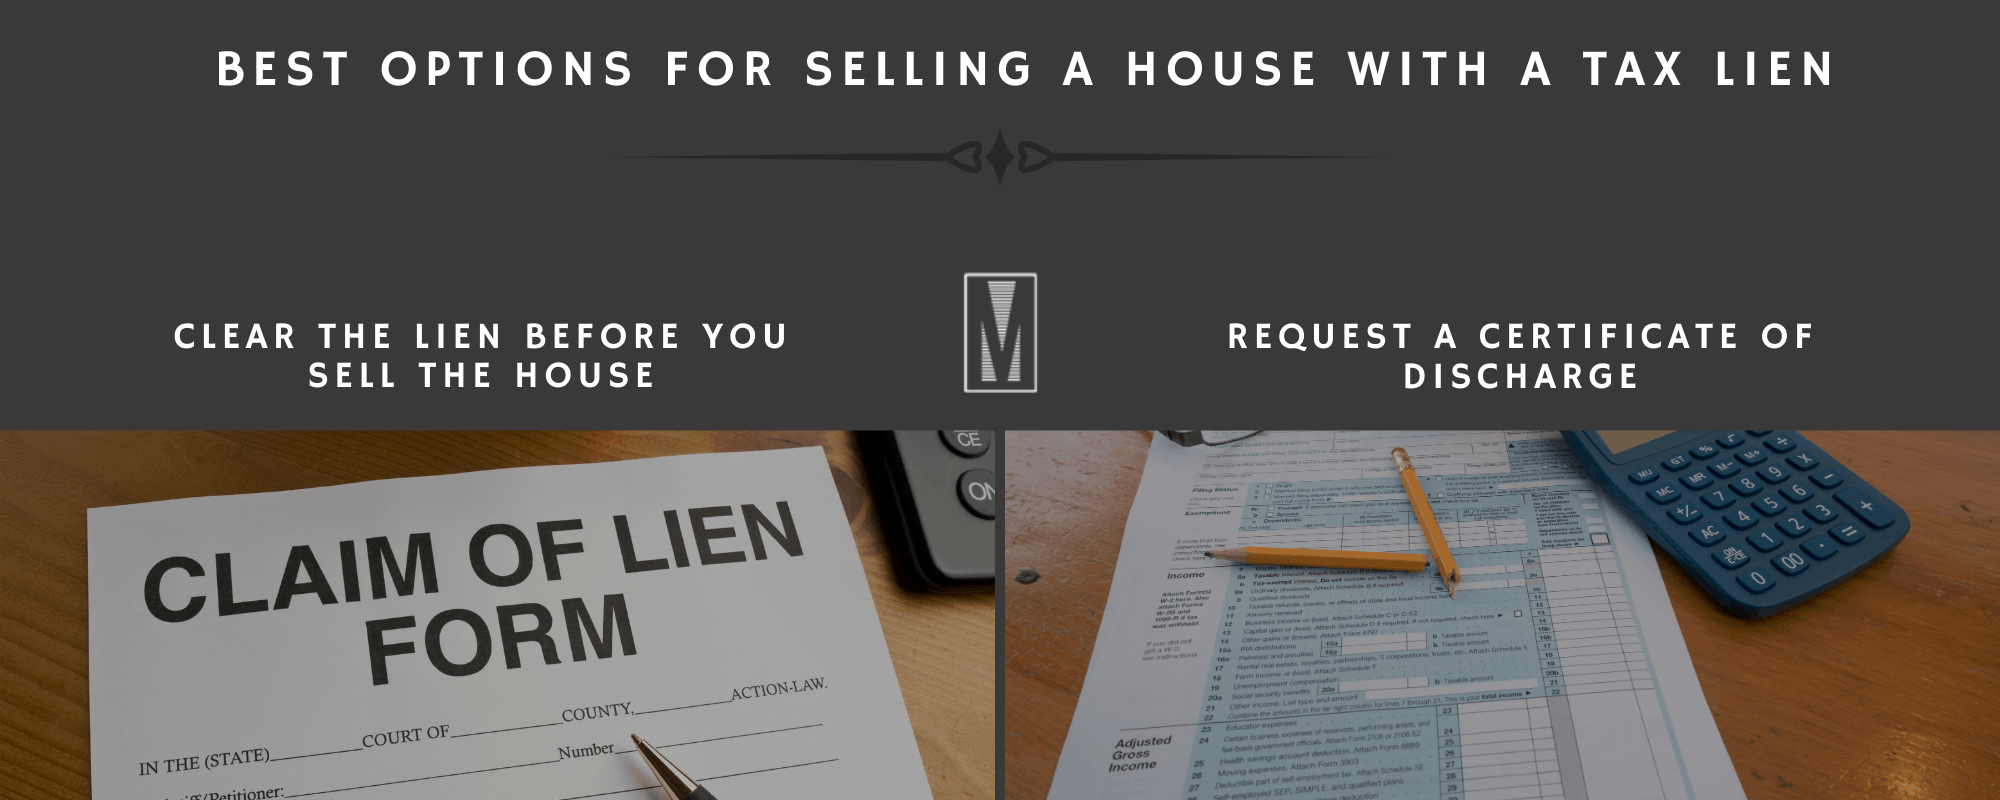 The Best Options For Selling A House With A Tax Lien